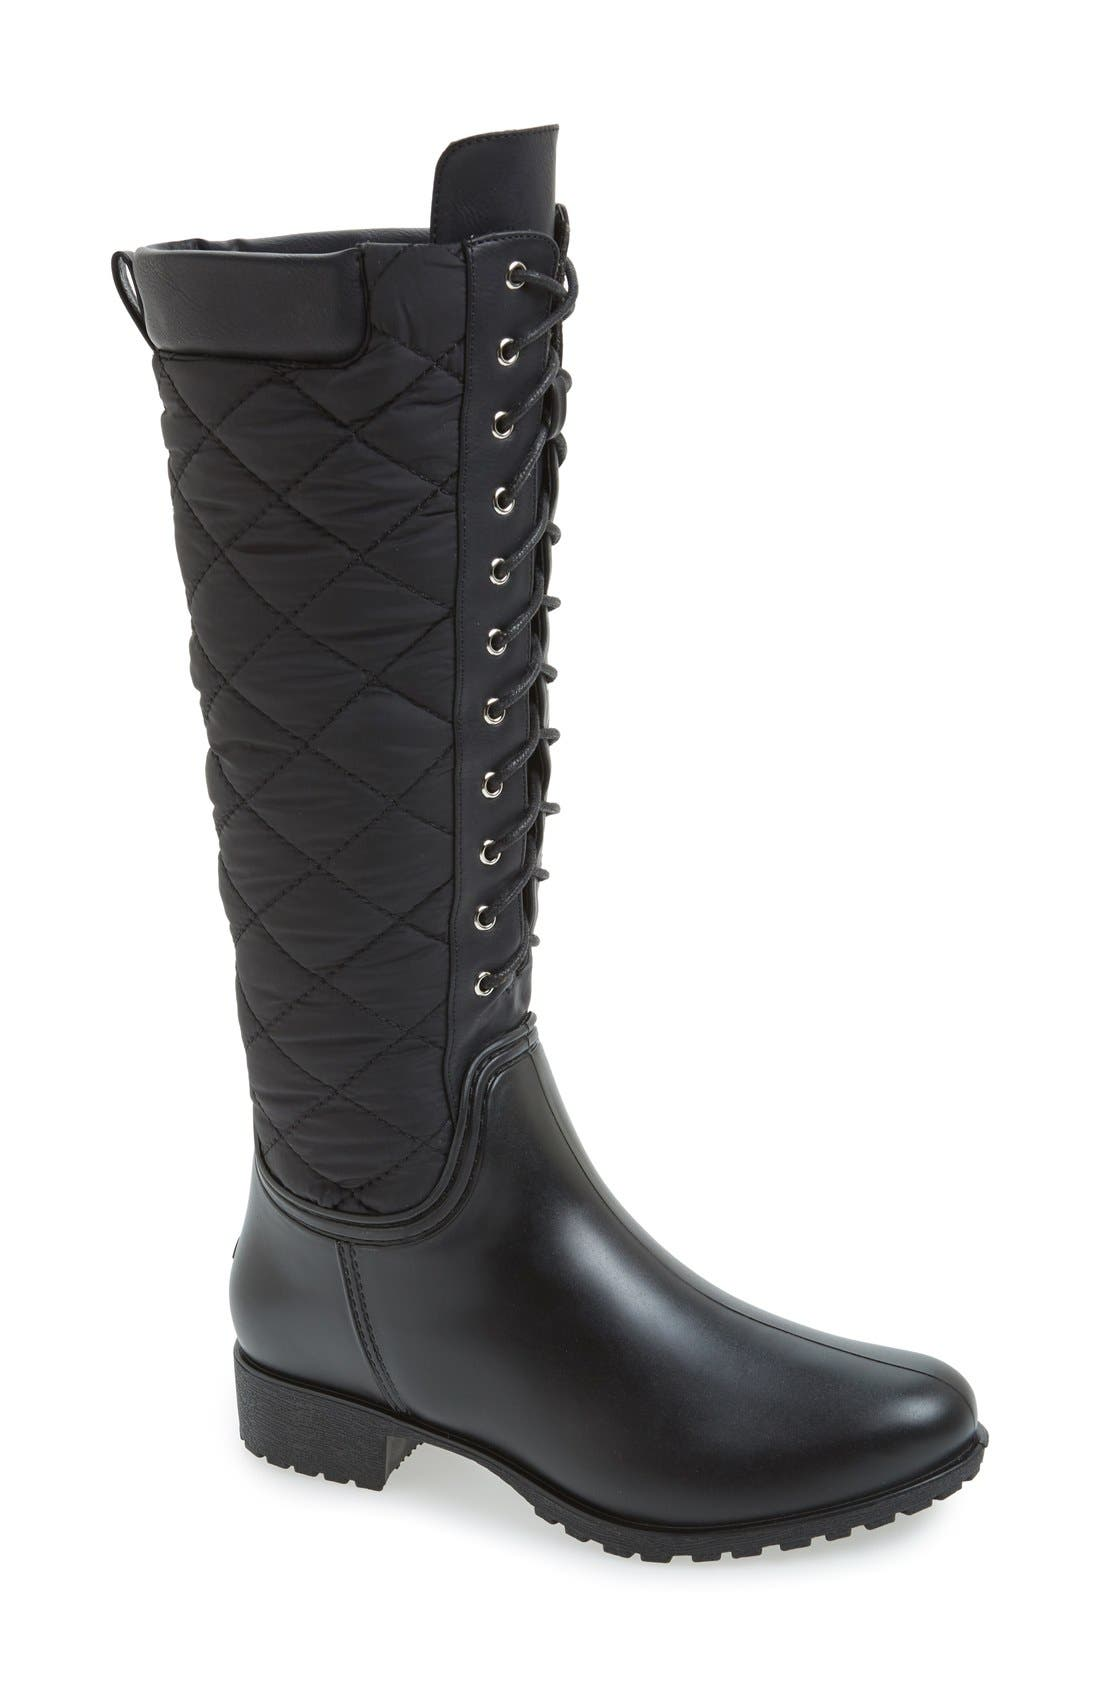 Tofino Quilted Tall Waterproof Rain Boot,                         Main,                         color, 001